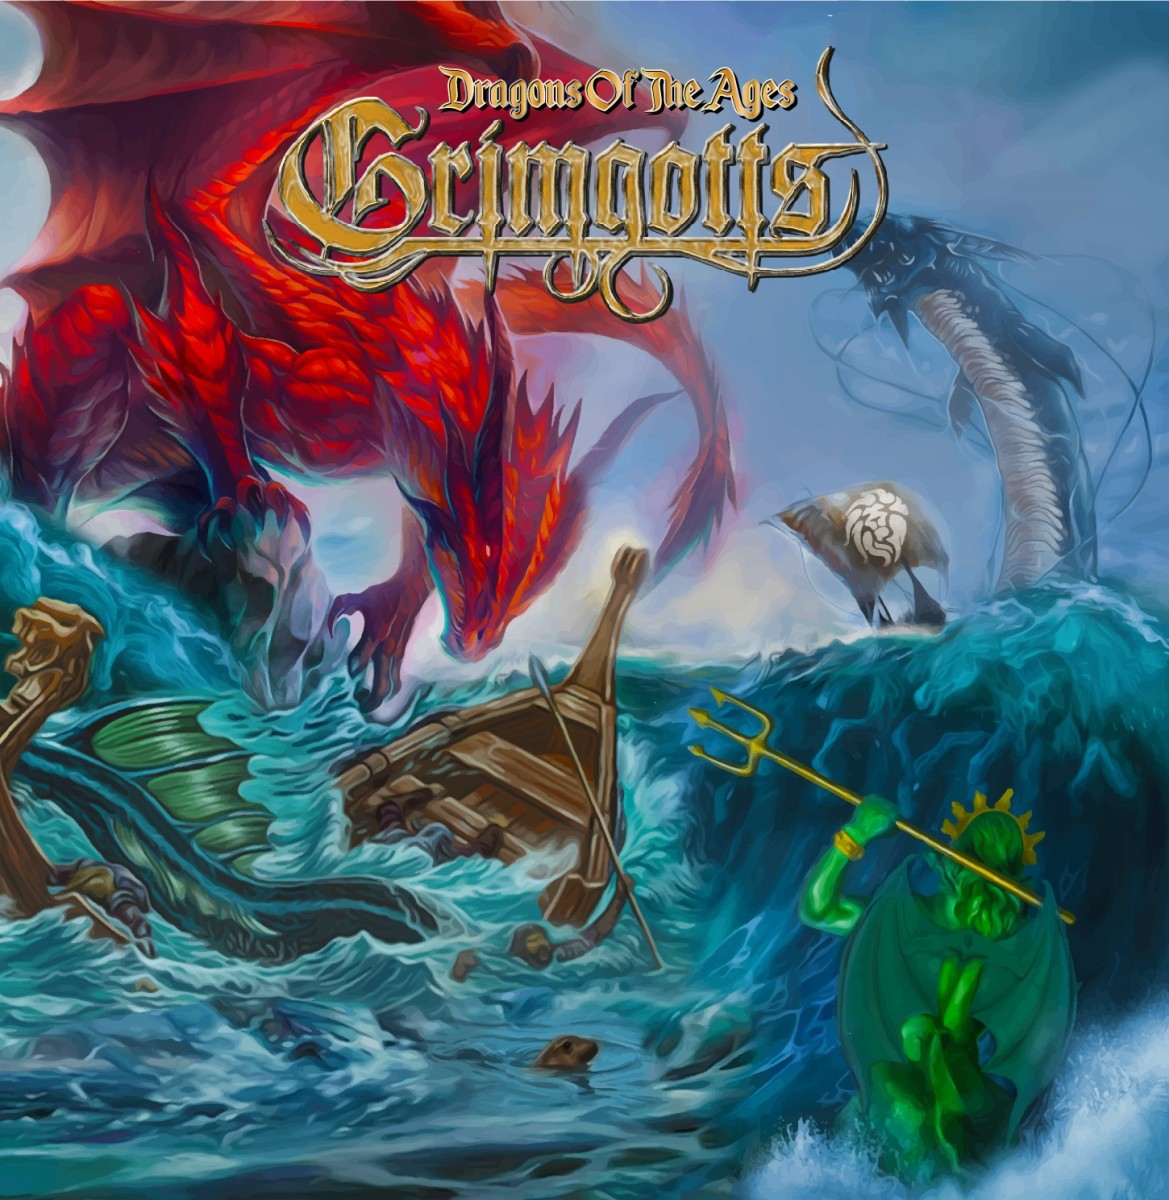 grimgotts-dragons-of-the-ages-album-review